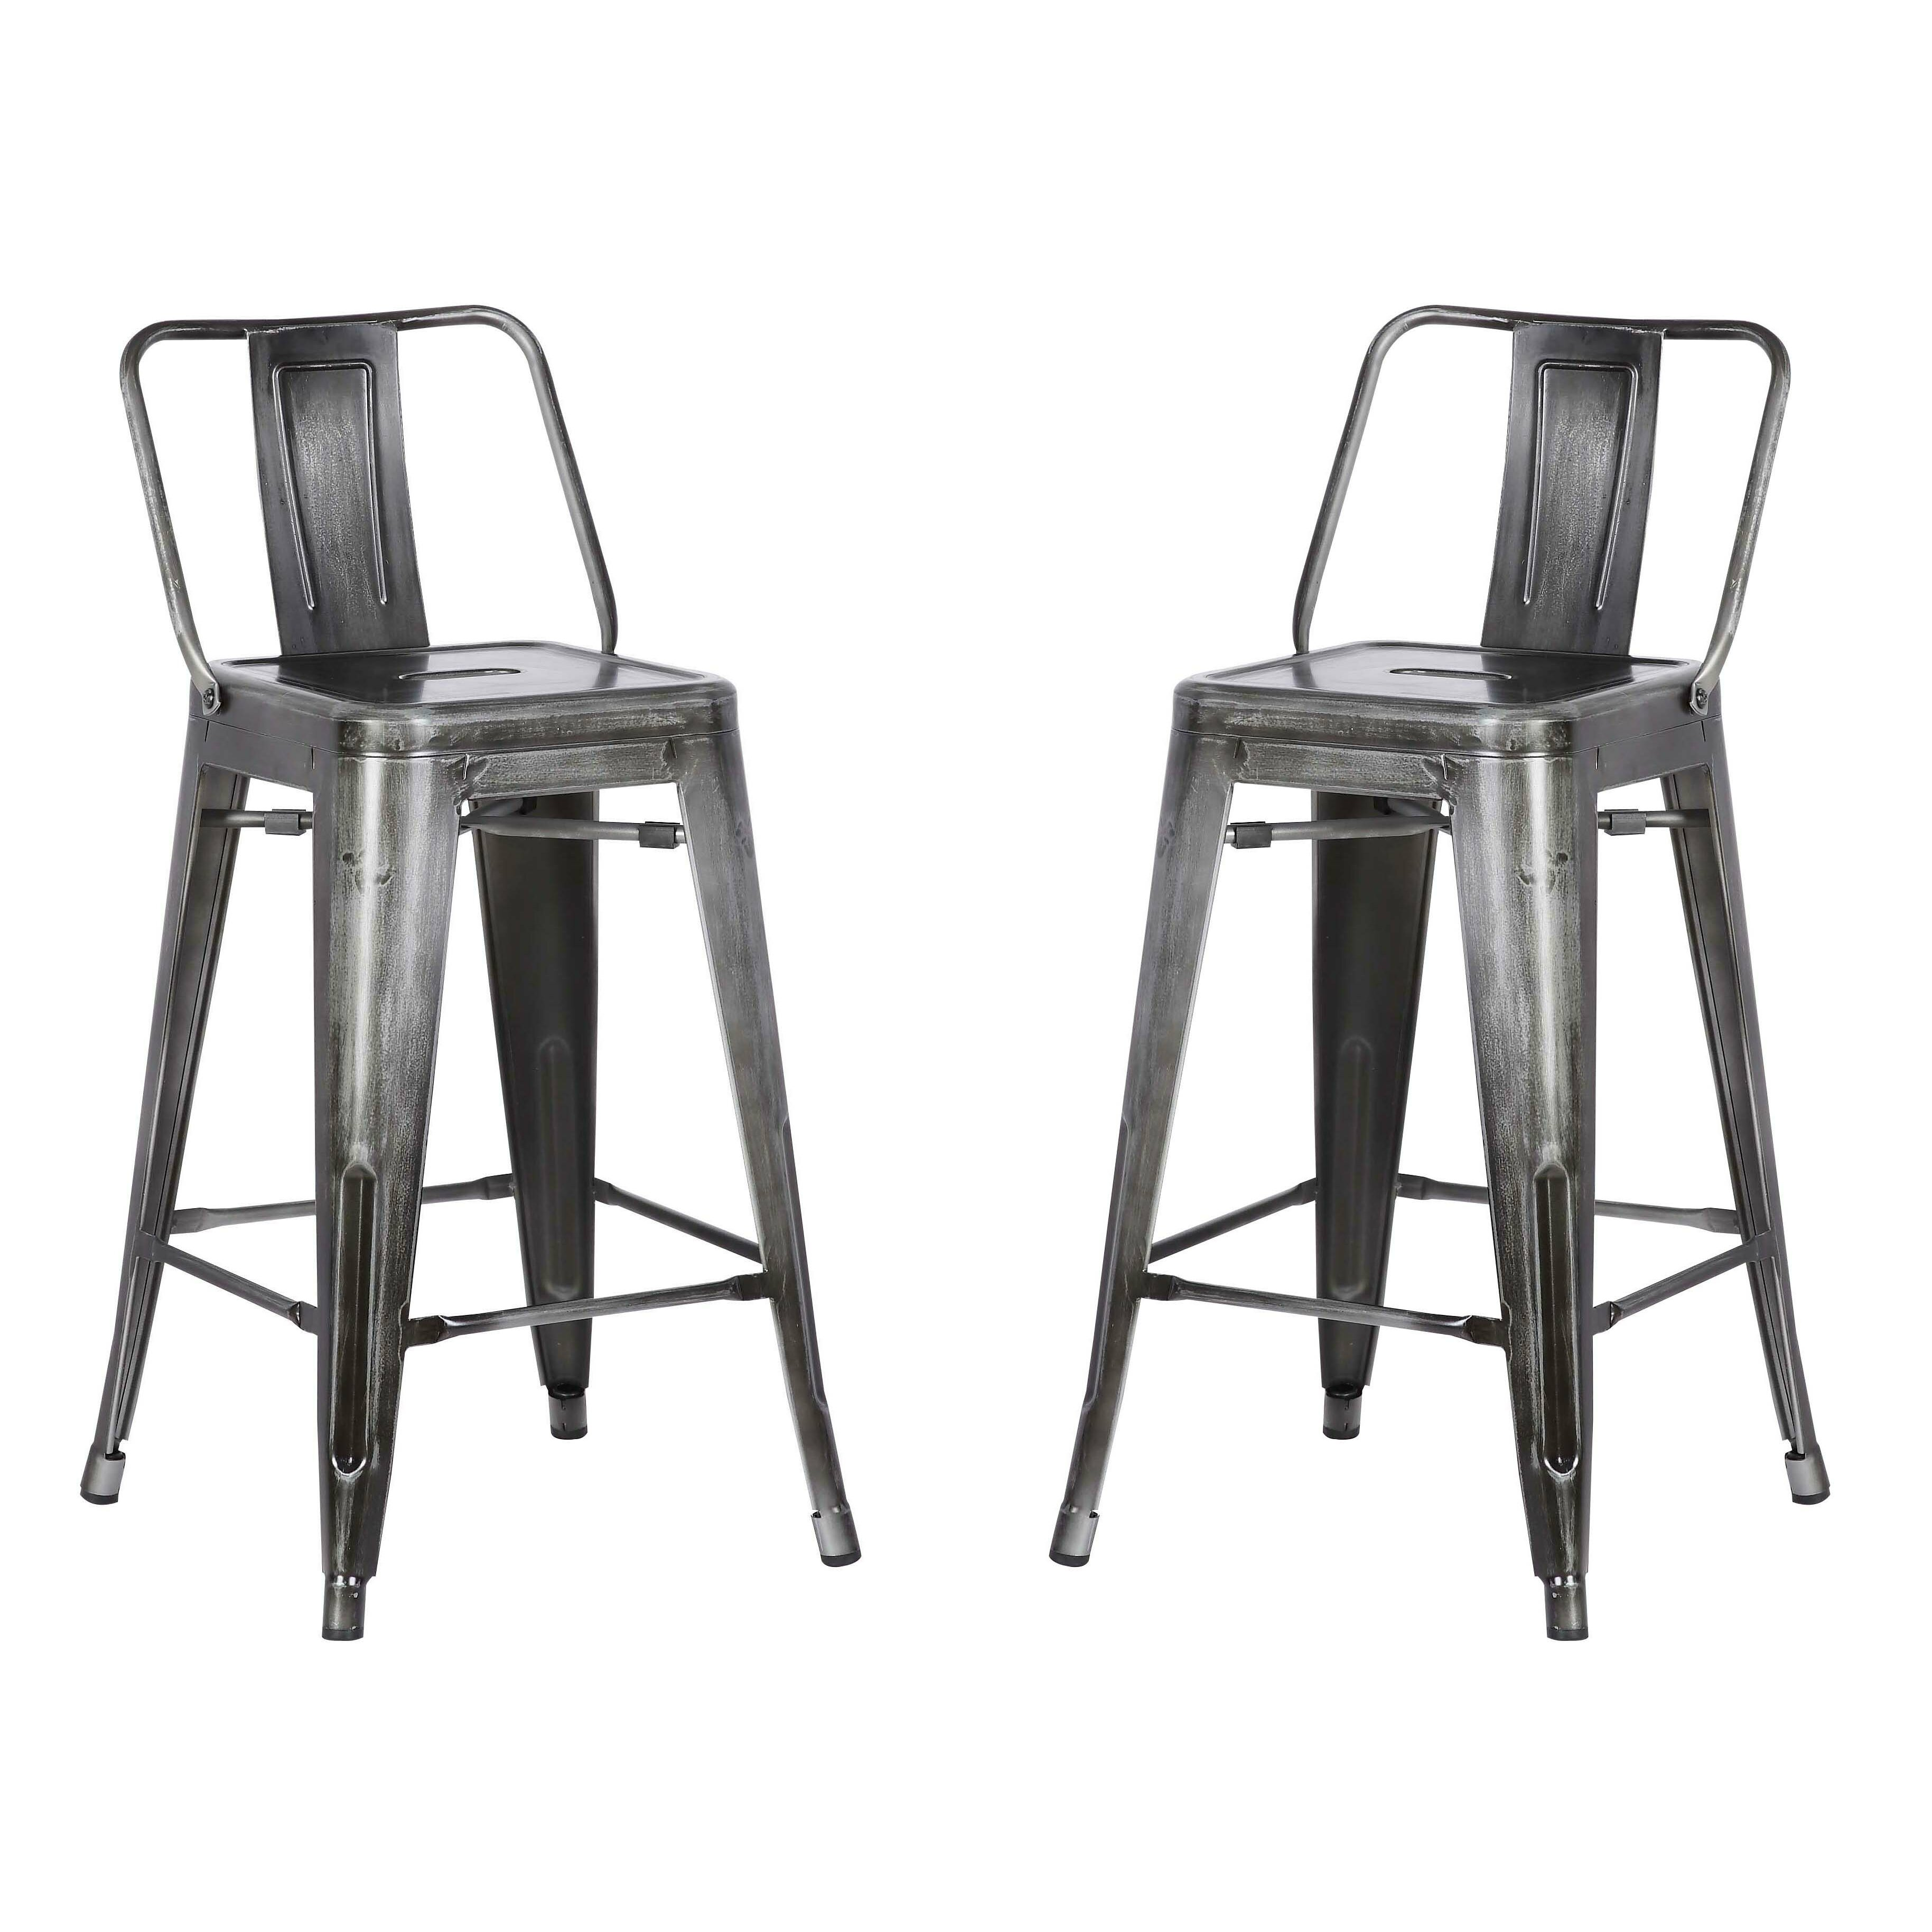 Ac pacific 24 bar stool reviews for 24 bar stools